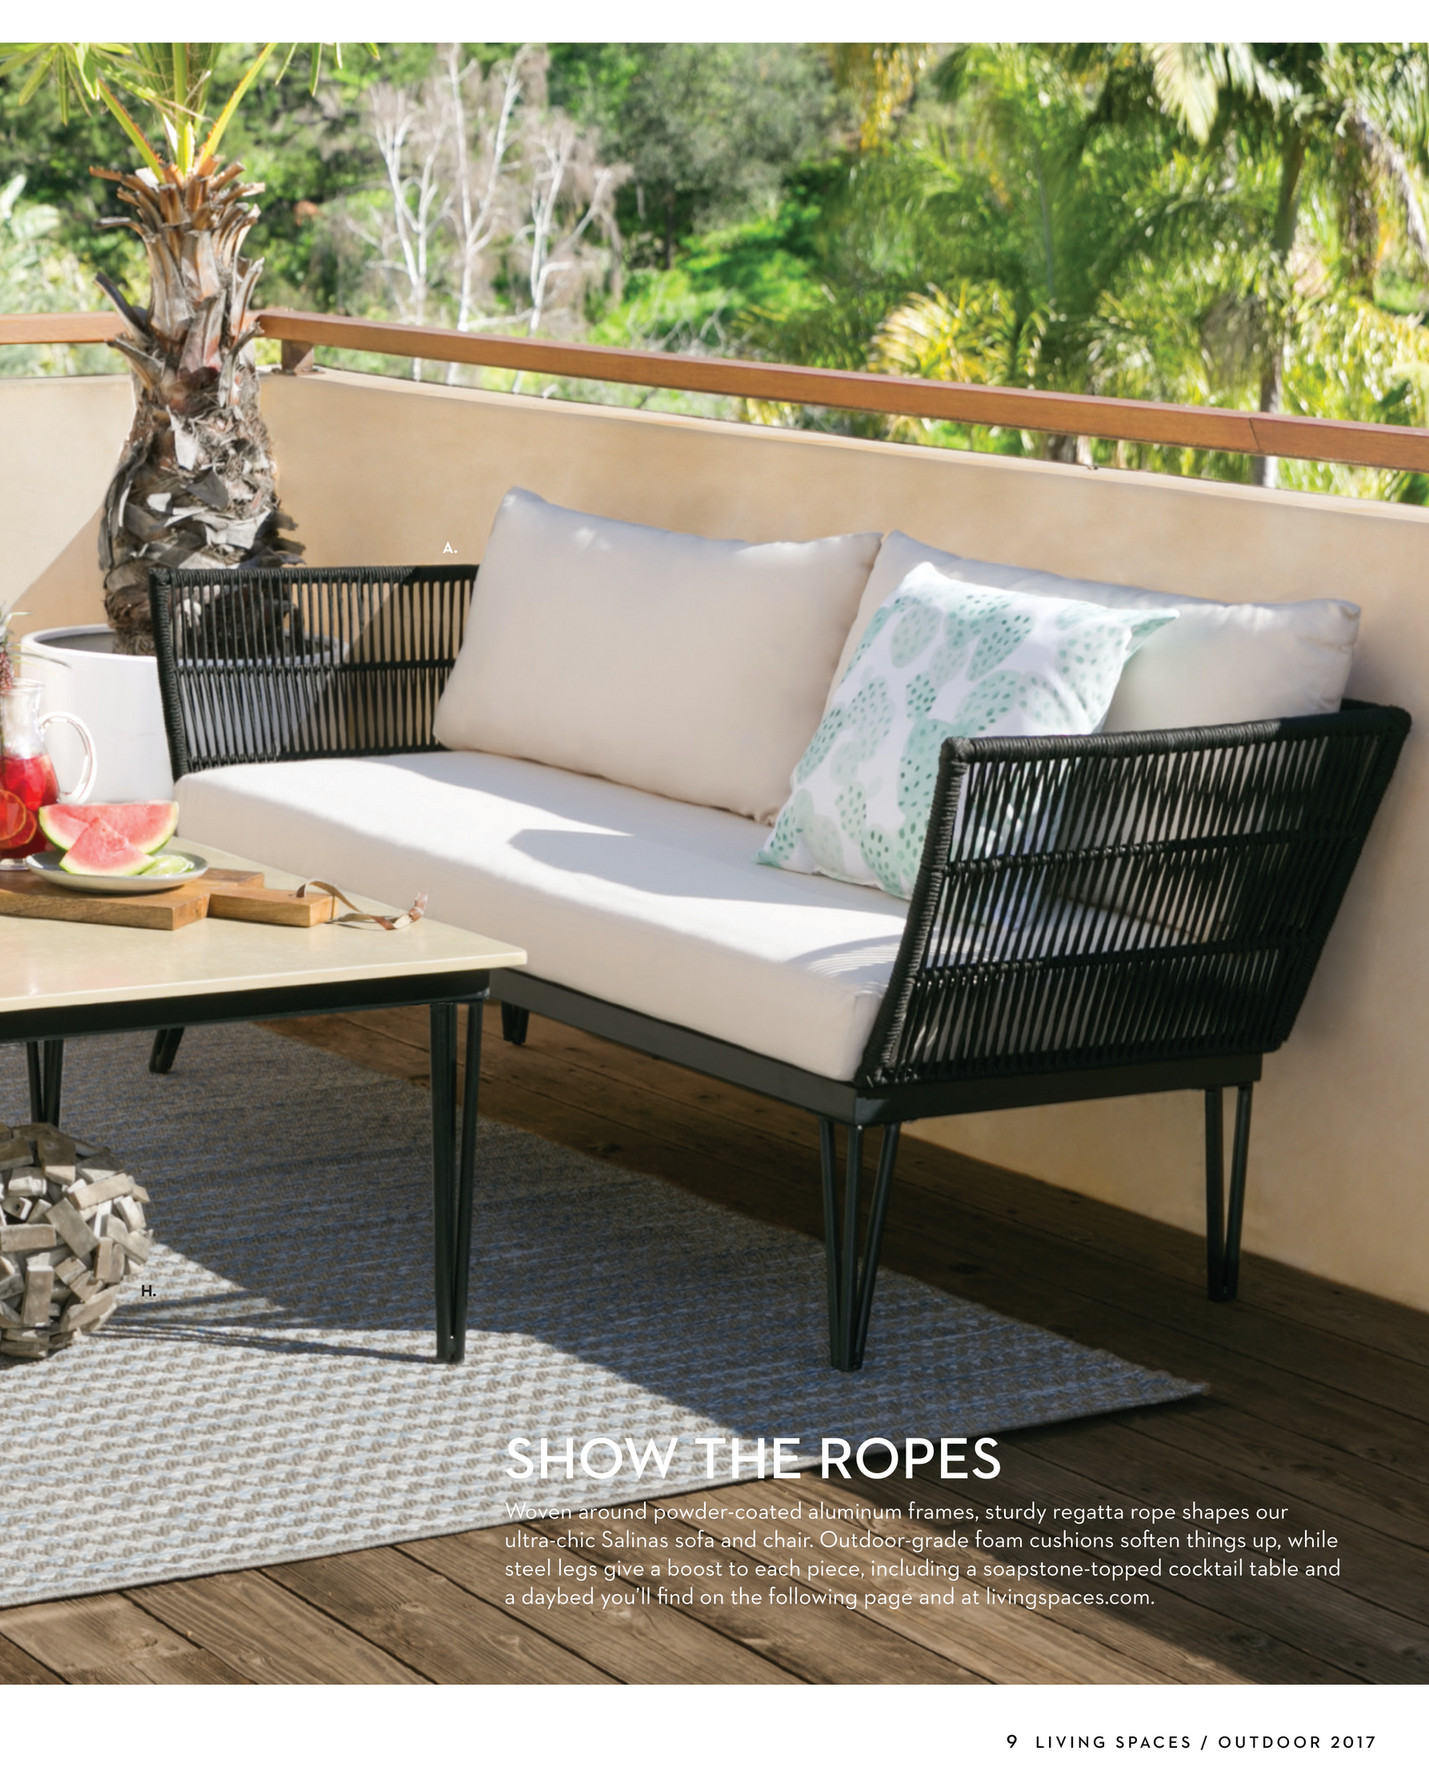 - Living Spaces - Product Catalog - Outdoor 2017 - Page 8-9